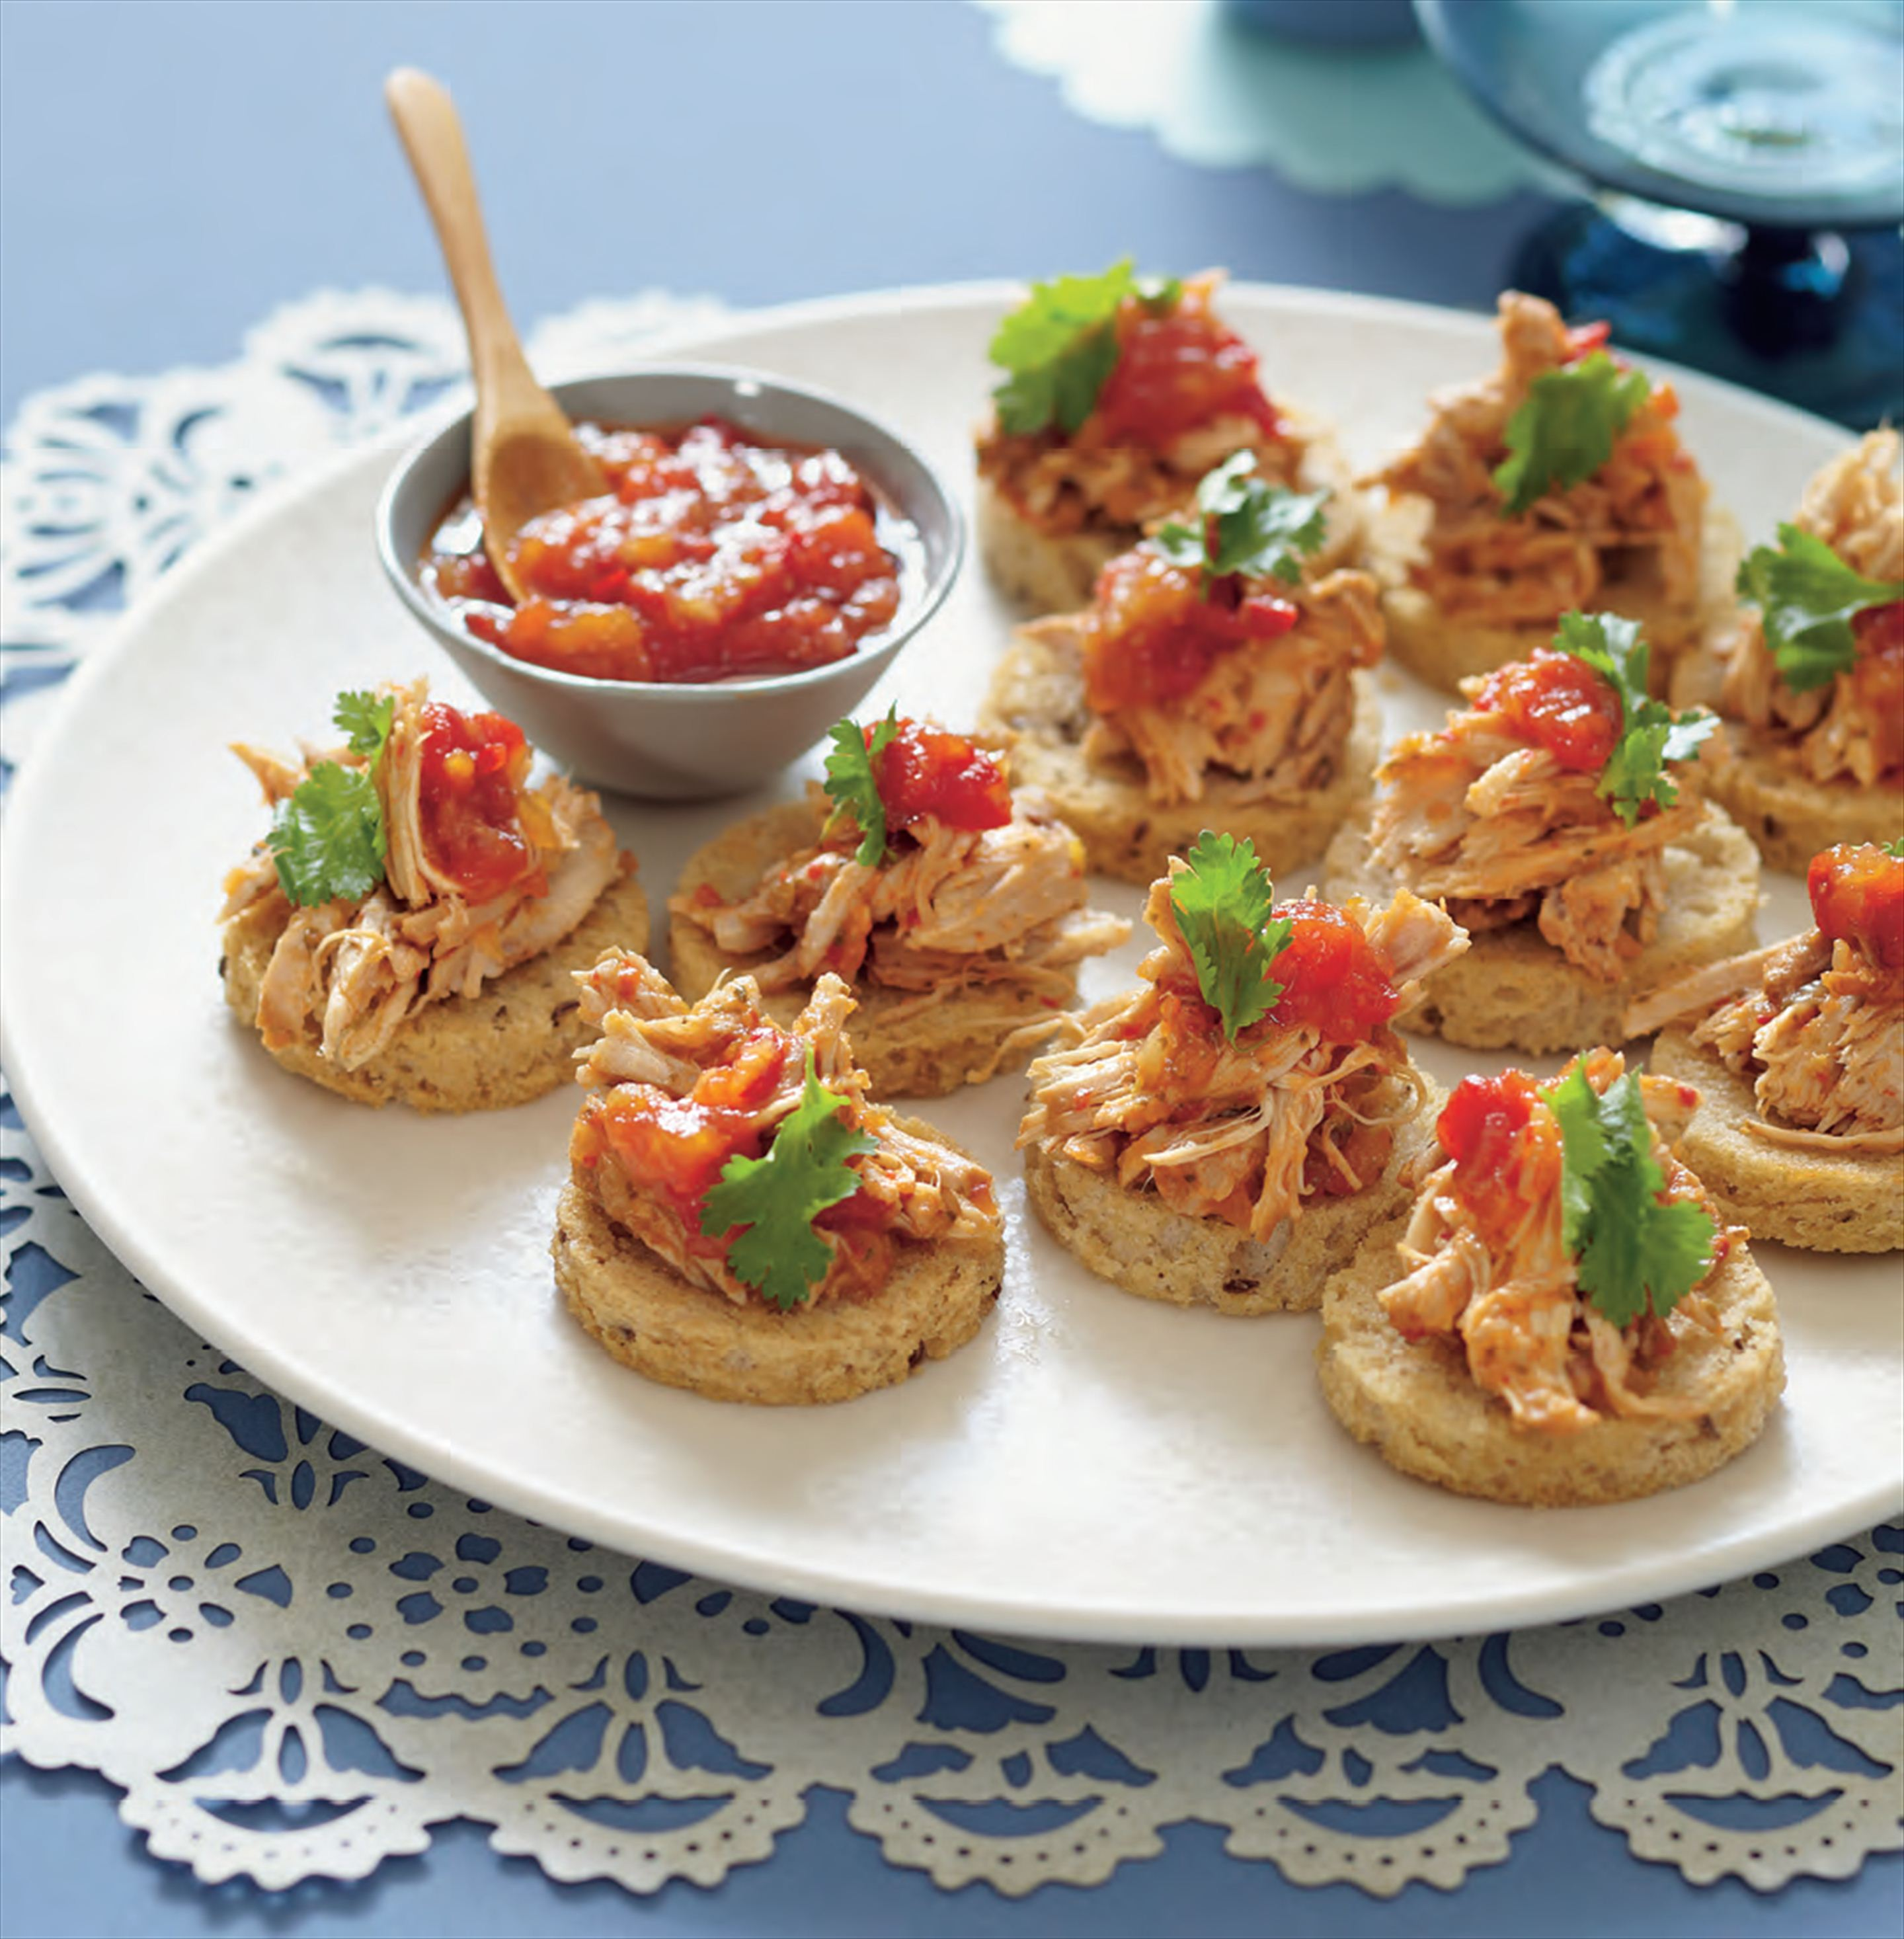 Pork and chilli jam tostadas